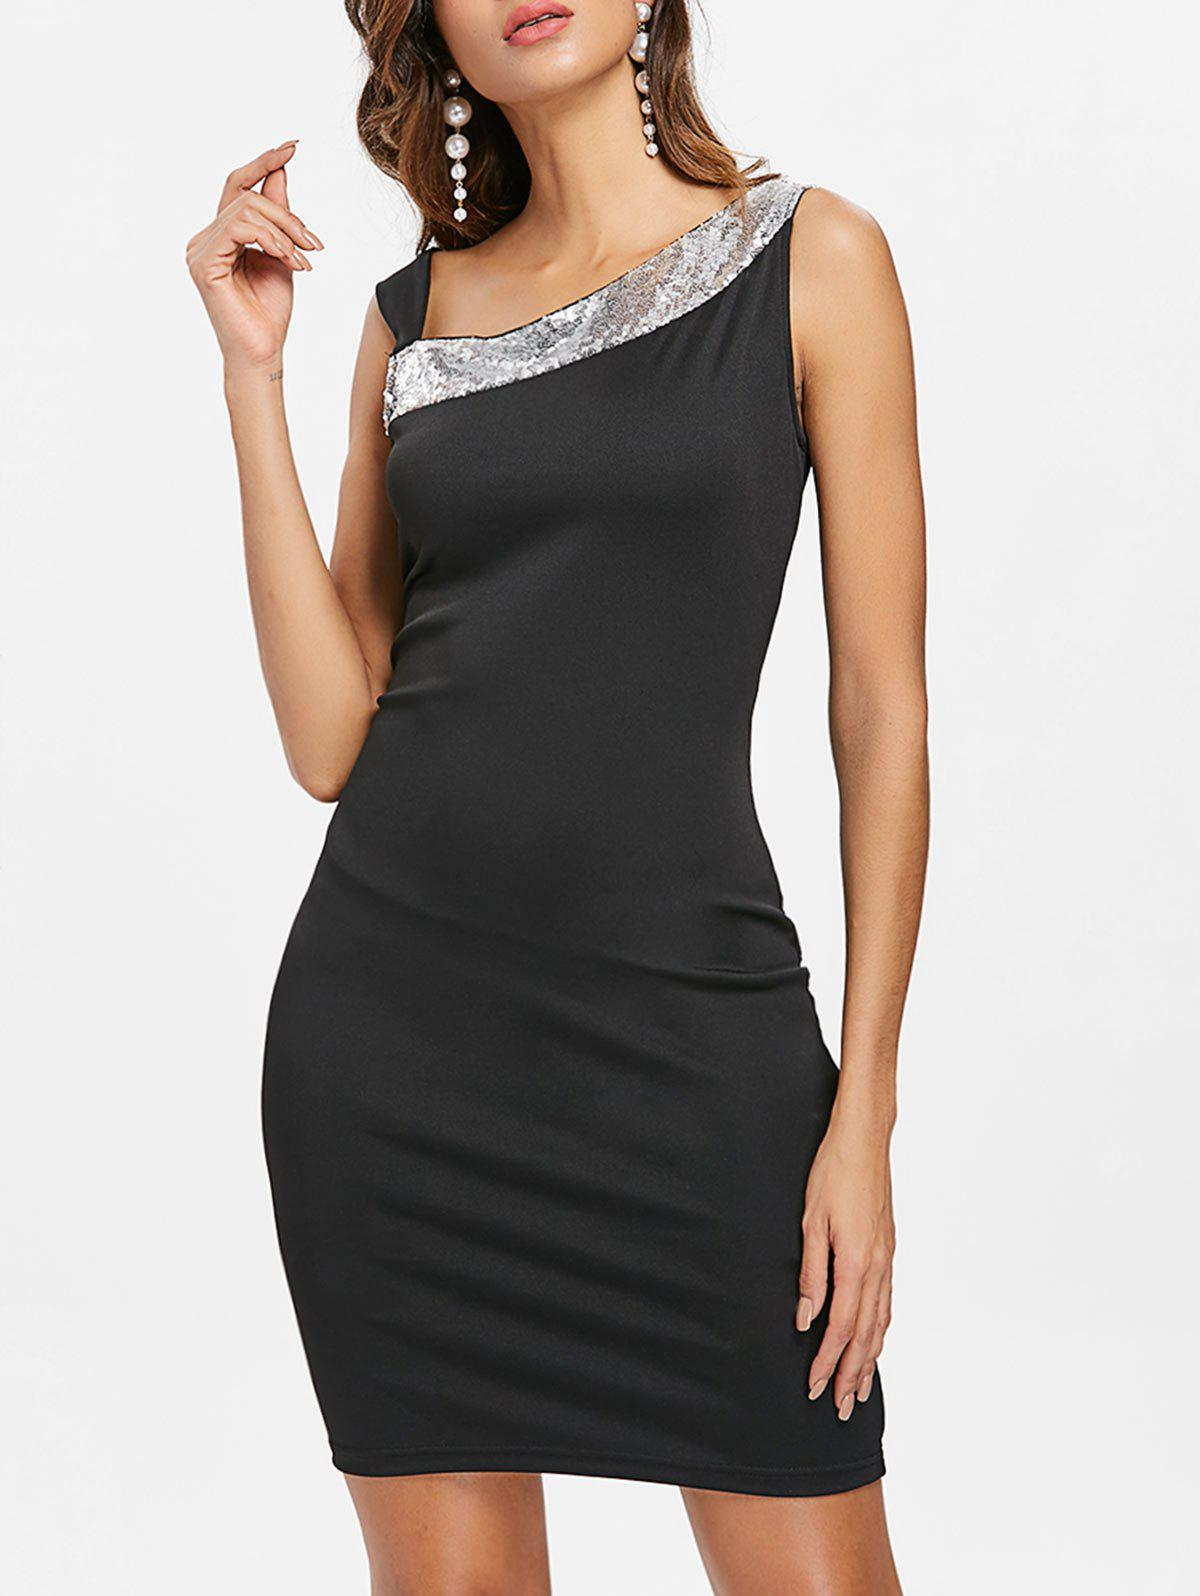 Skew Neck Sequins Mini Party Dress - BLACK L